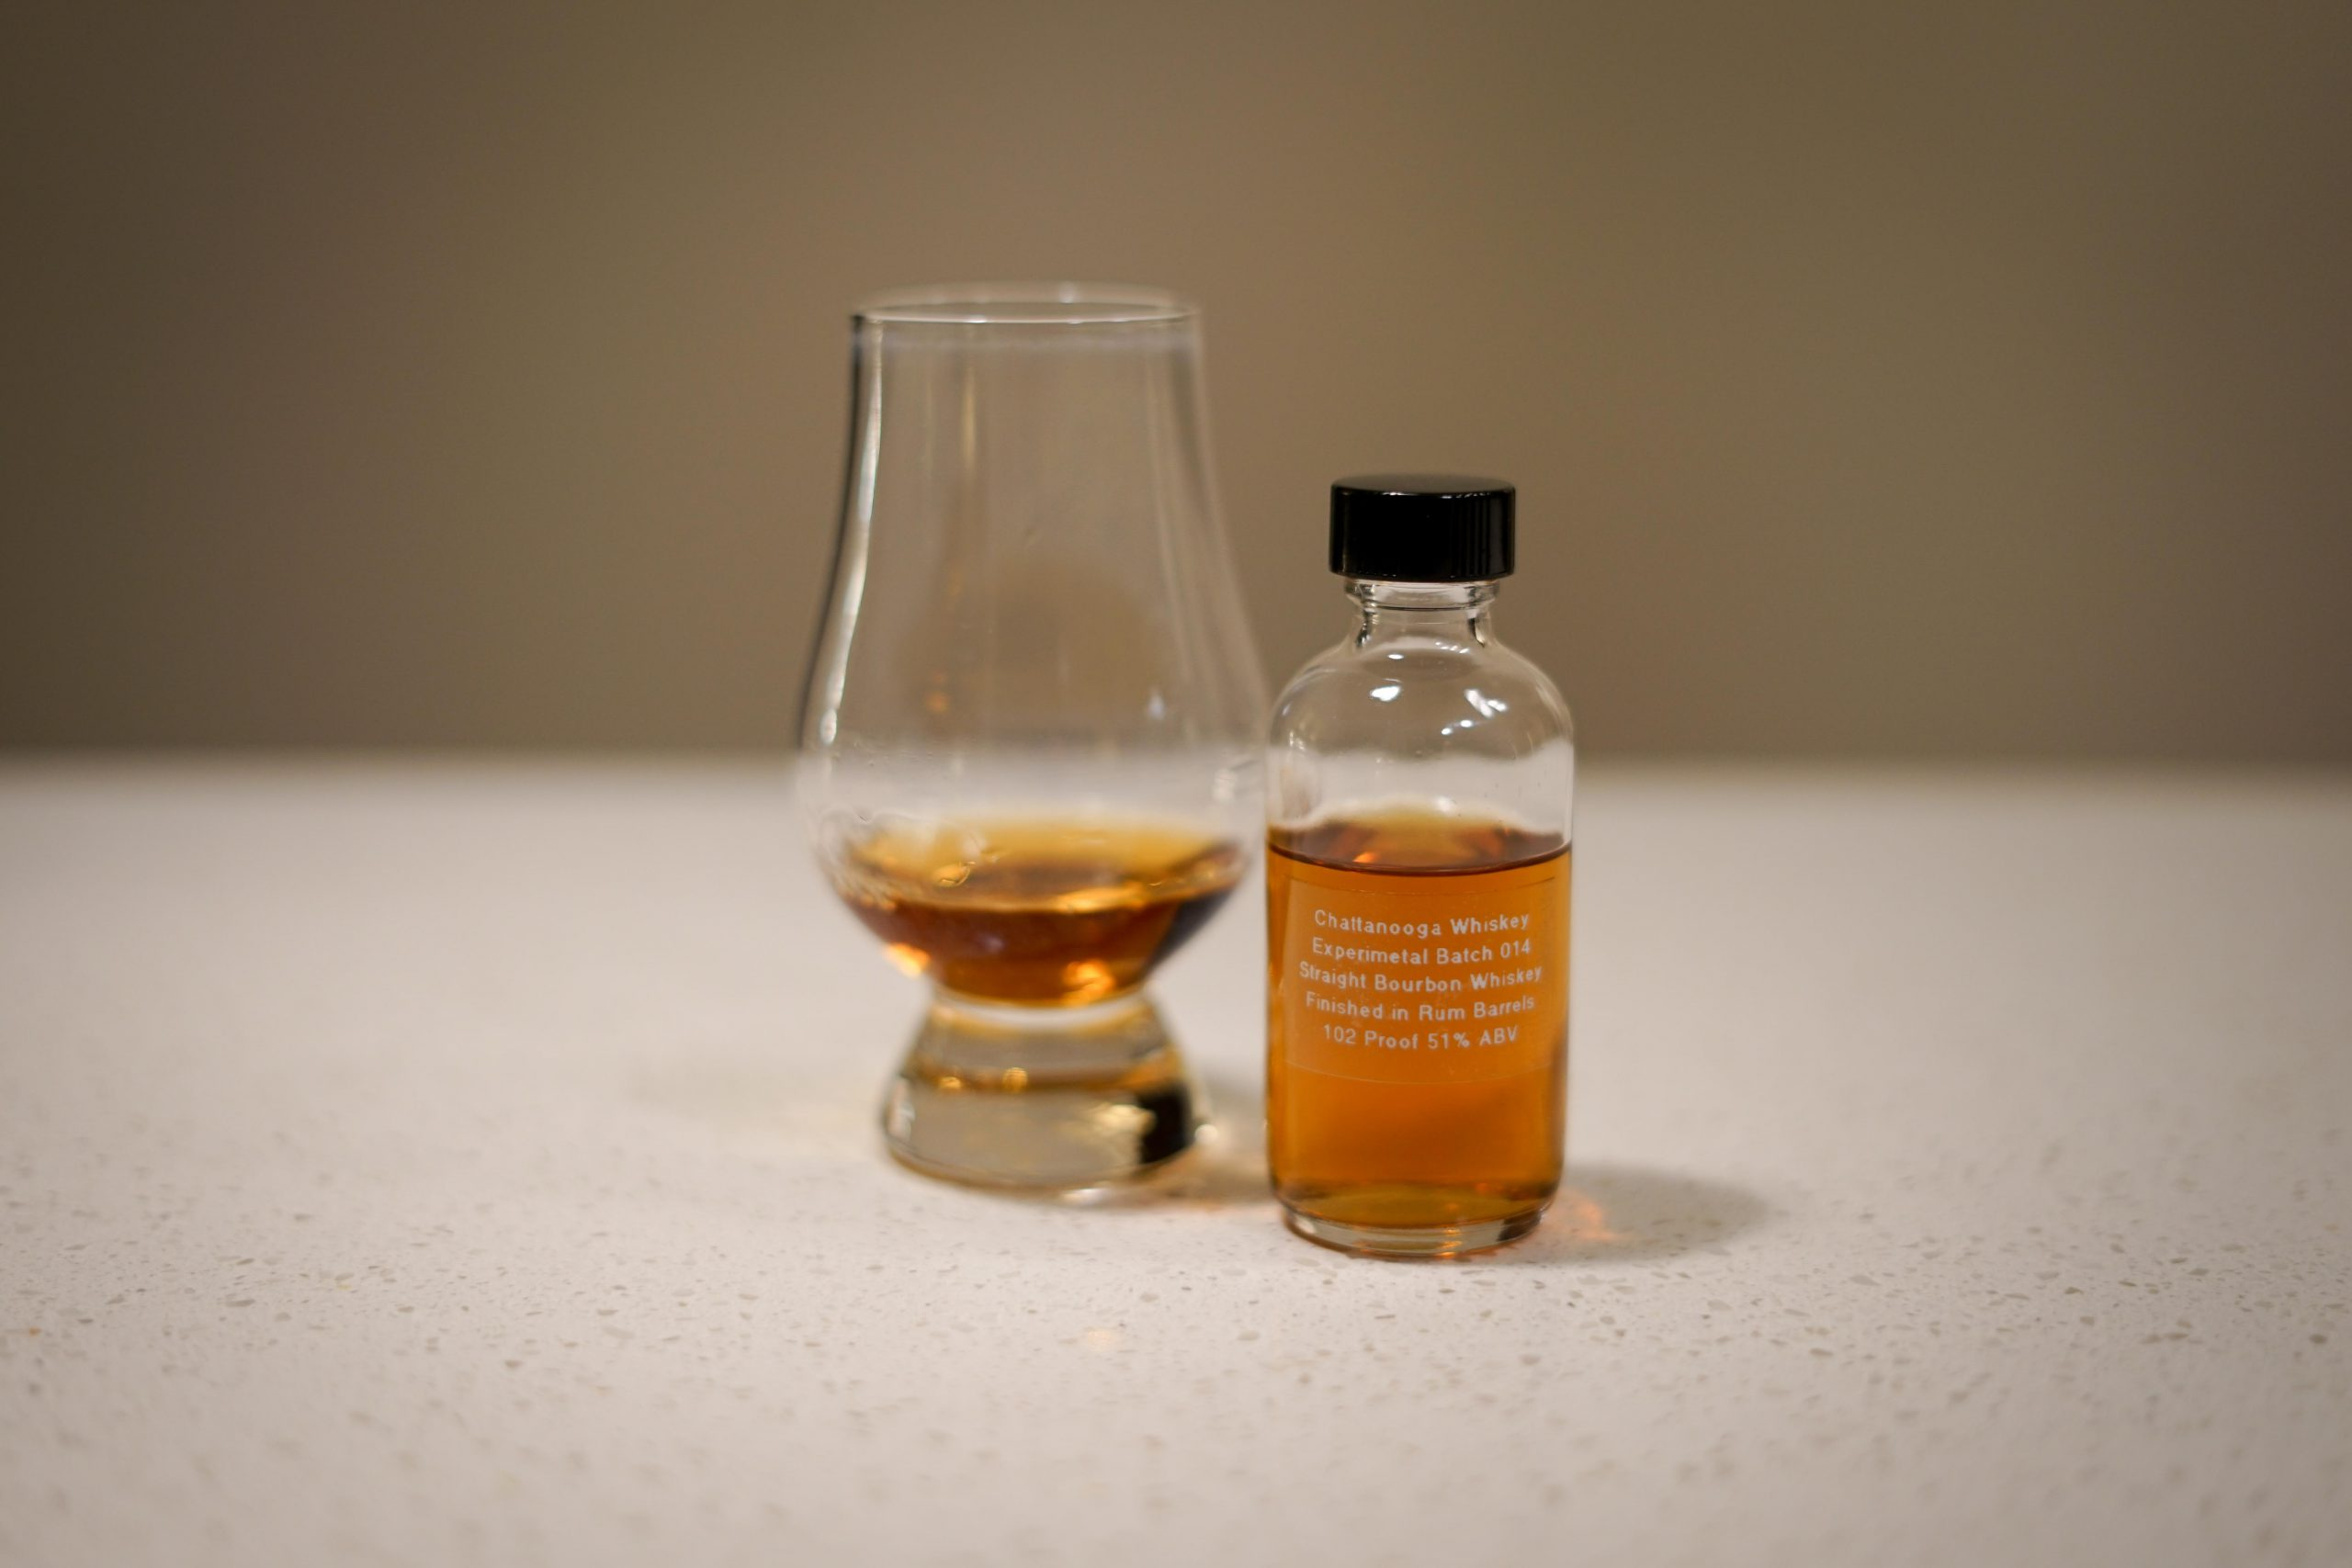 Chattanooga Whiskey Experimental Batch #14